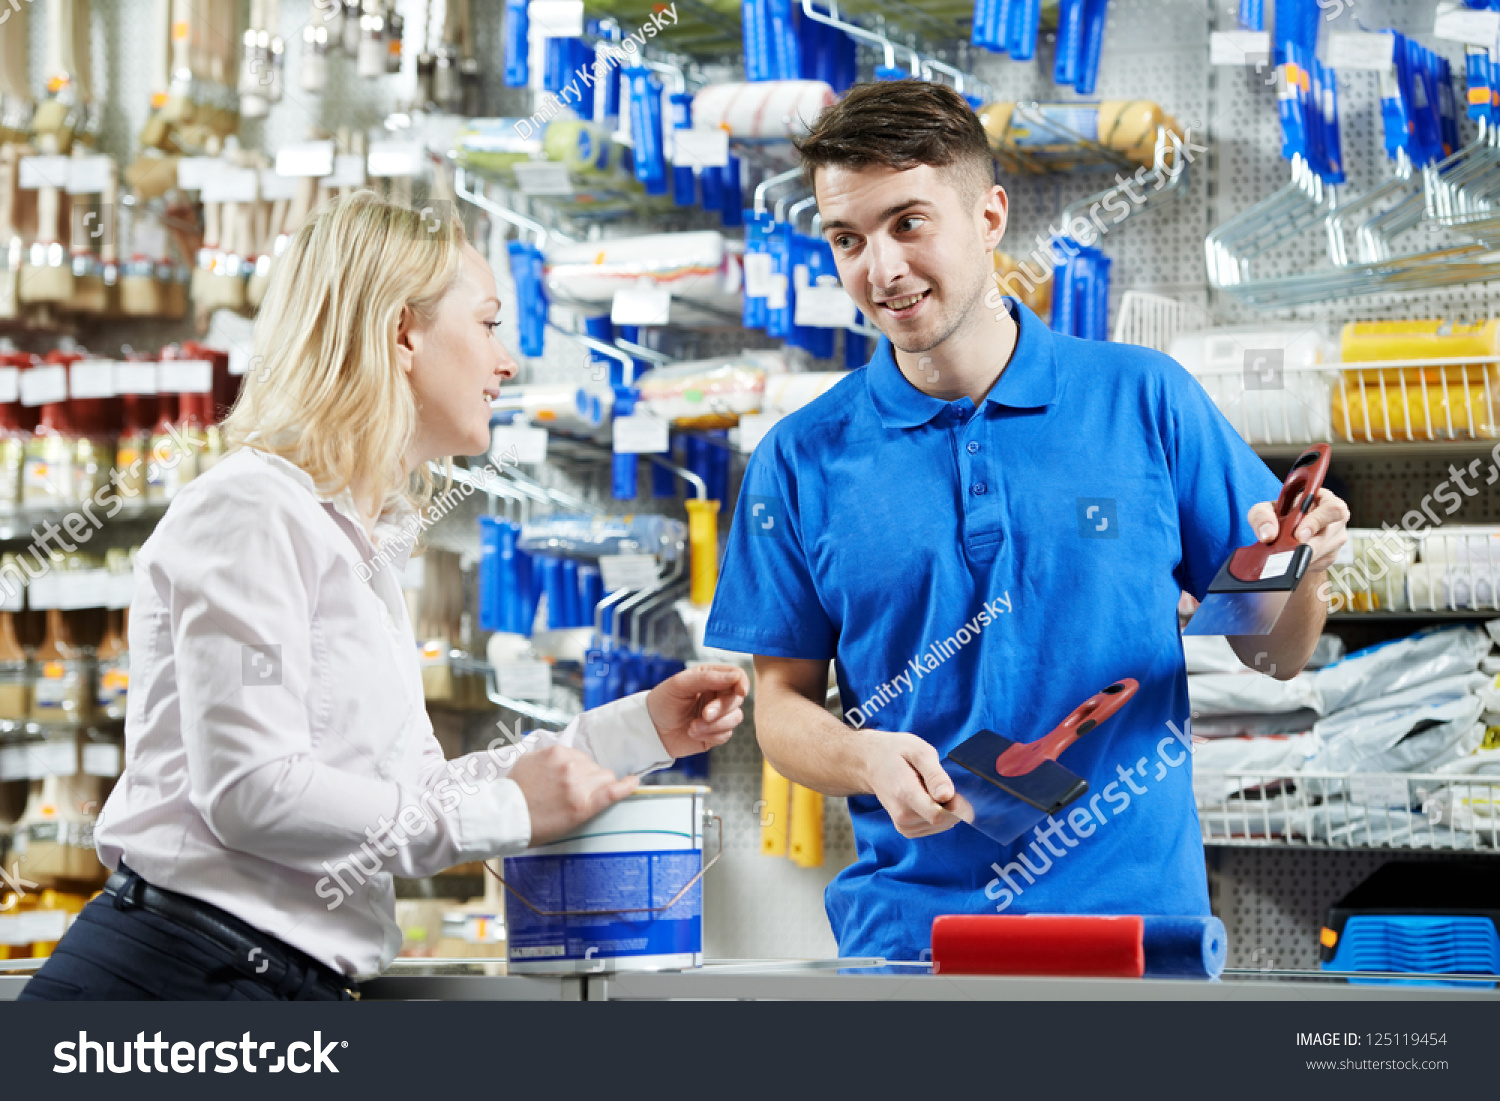 assistant seller help buyer by demonstrating stock photo  assistant seller help buyer by demonstrating putty knife for filling at hardware store